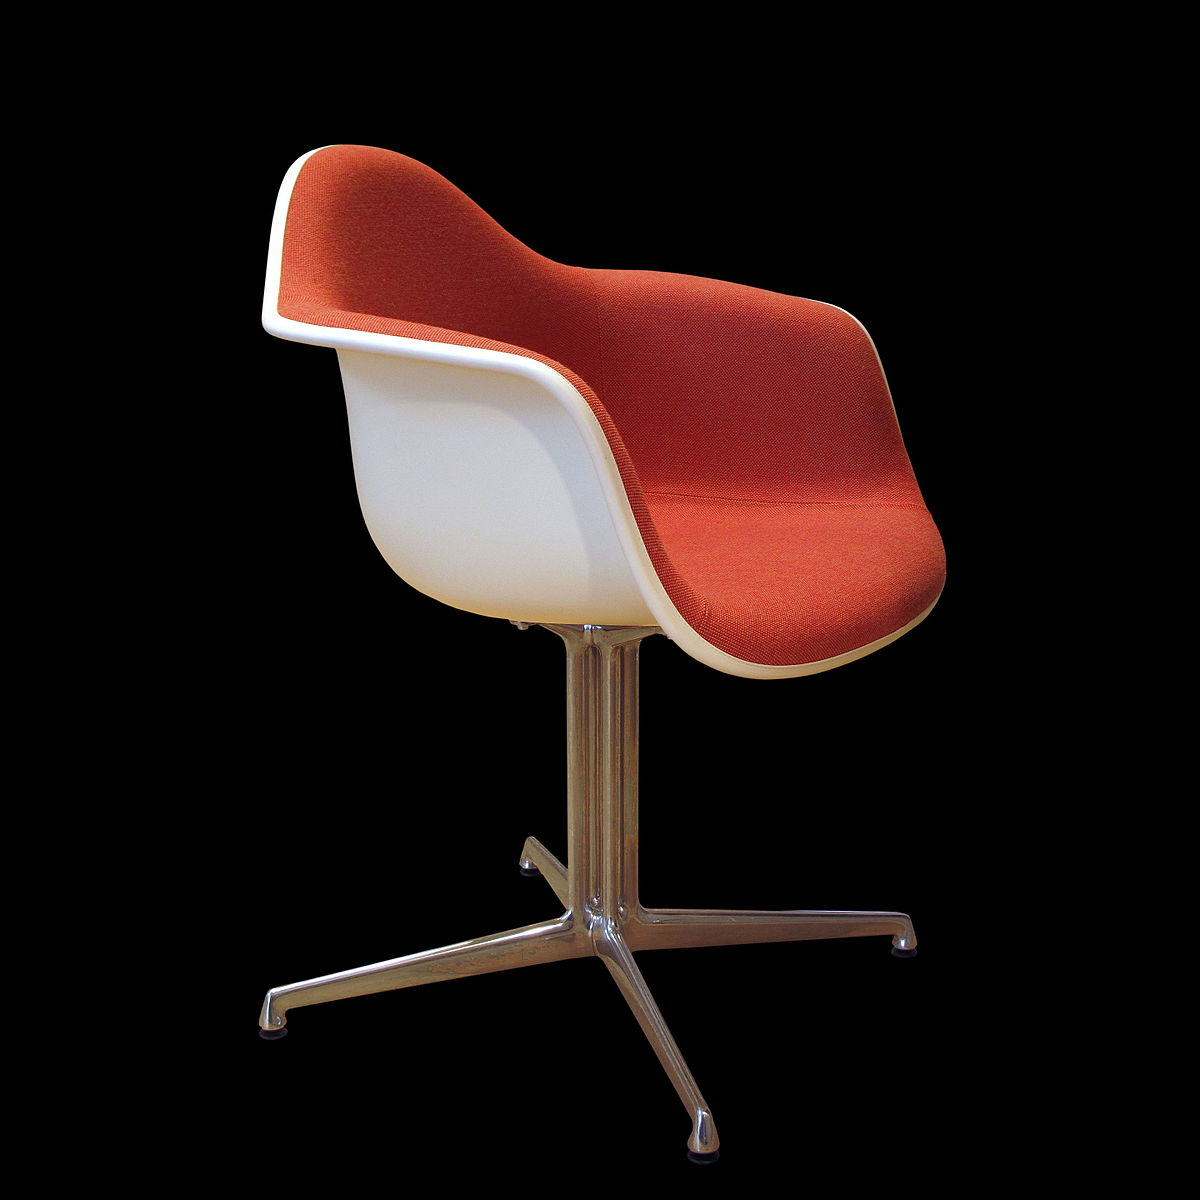 Eames fiberglass armchair wikipedia for Industrial design chair